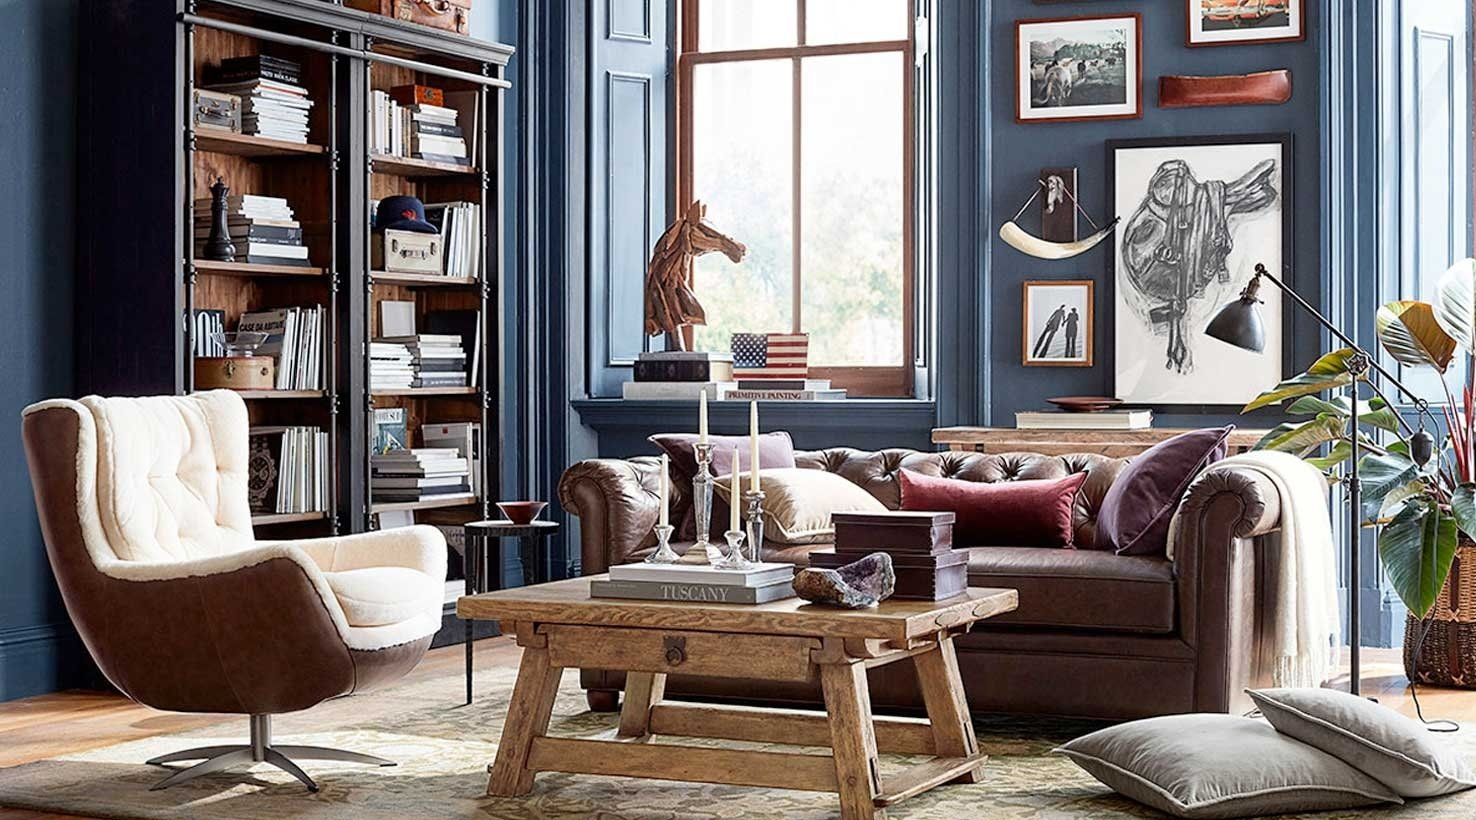 10 Unique Paint For Living Room Ideas living room paint color ideas inspiration gallery sherwin williams 29 2020